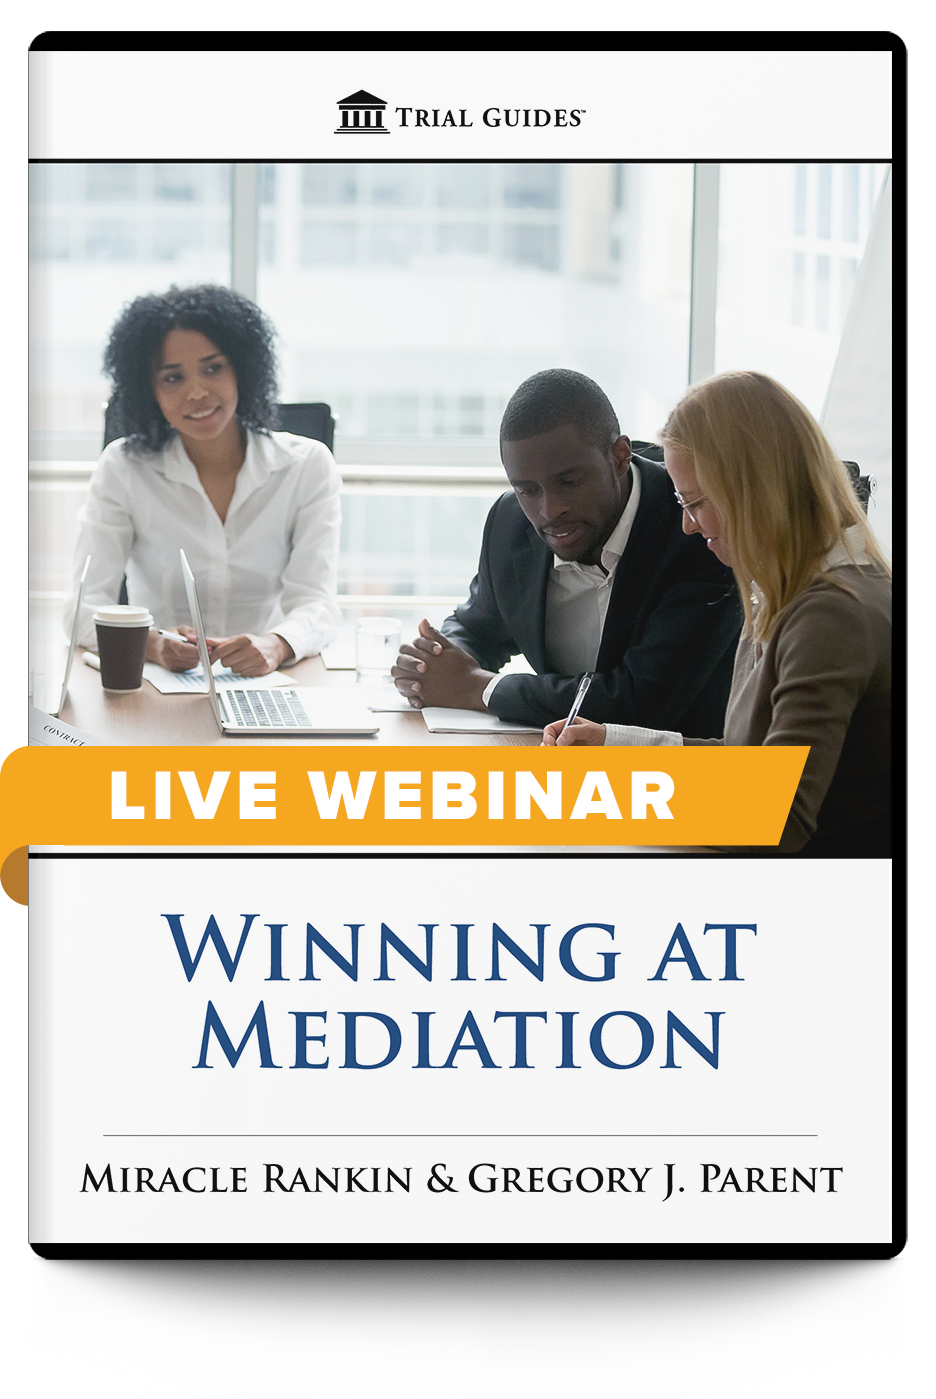 Winning at Mediation - Live Webinar